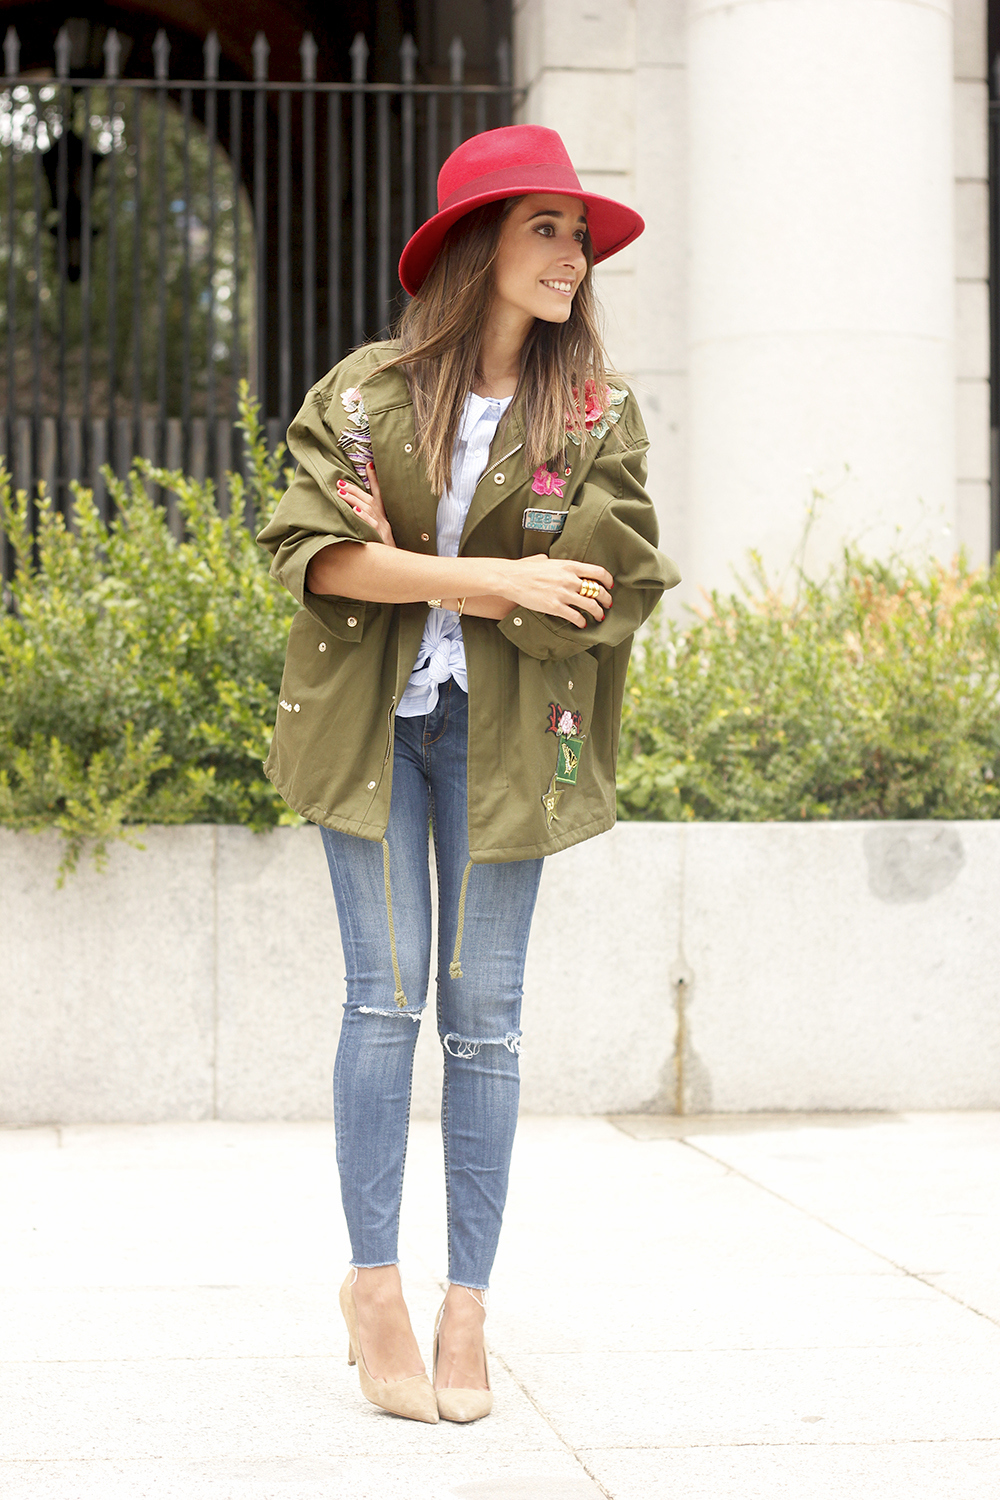 Green Parka Jeans nude heels red uterqüe hat style fashion18